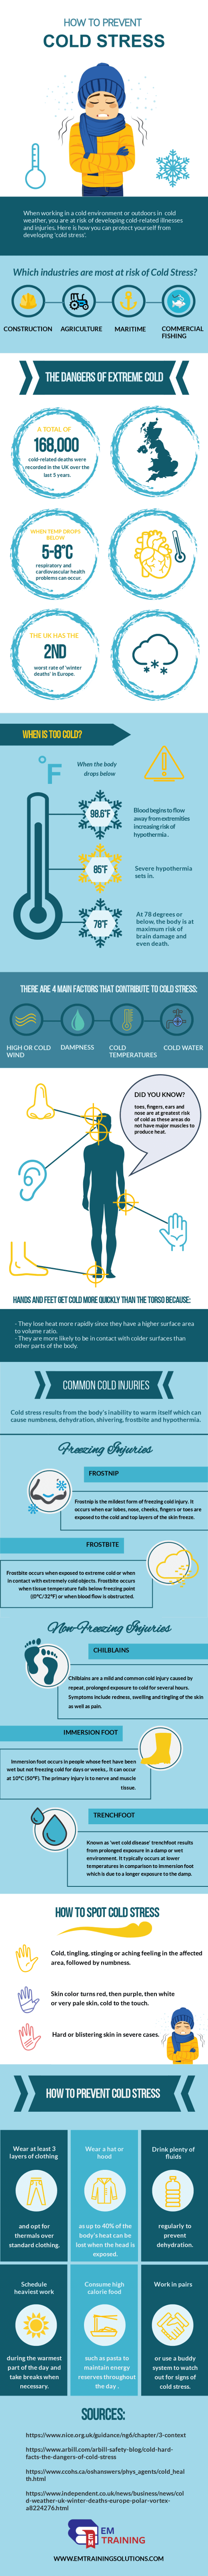 How to Prevent Cold Stress